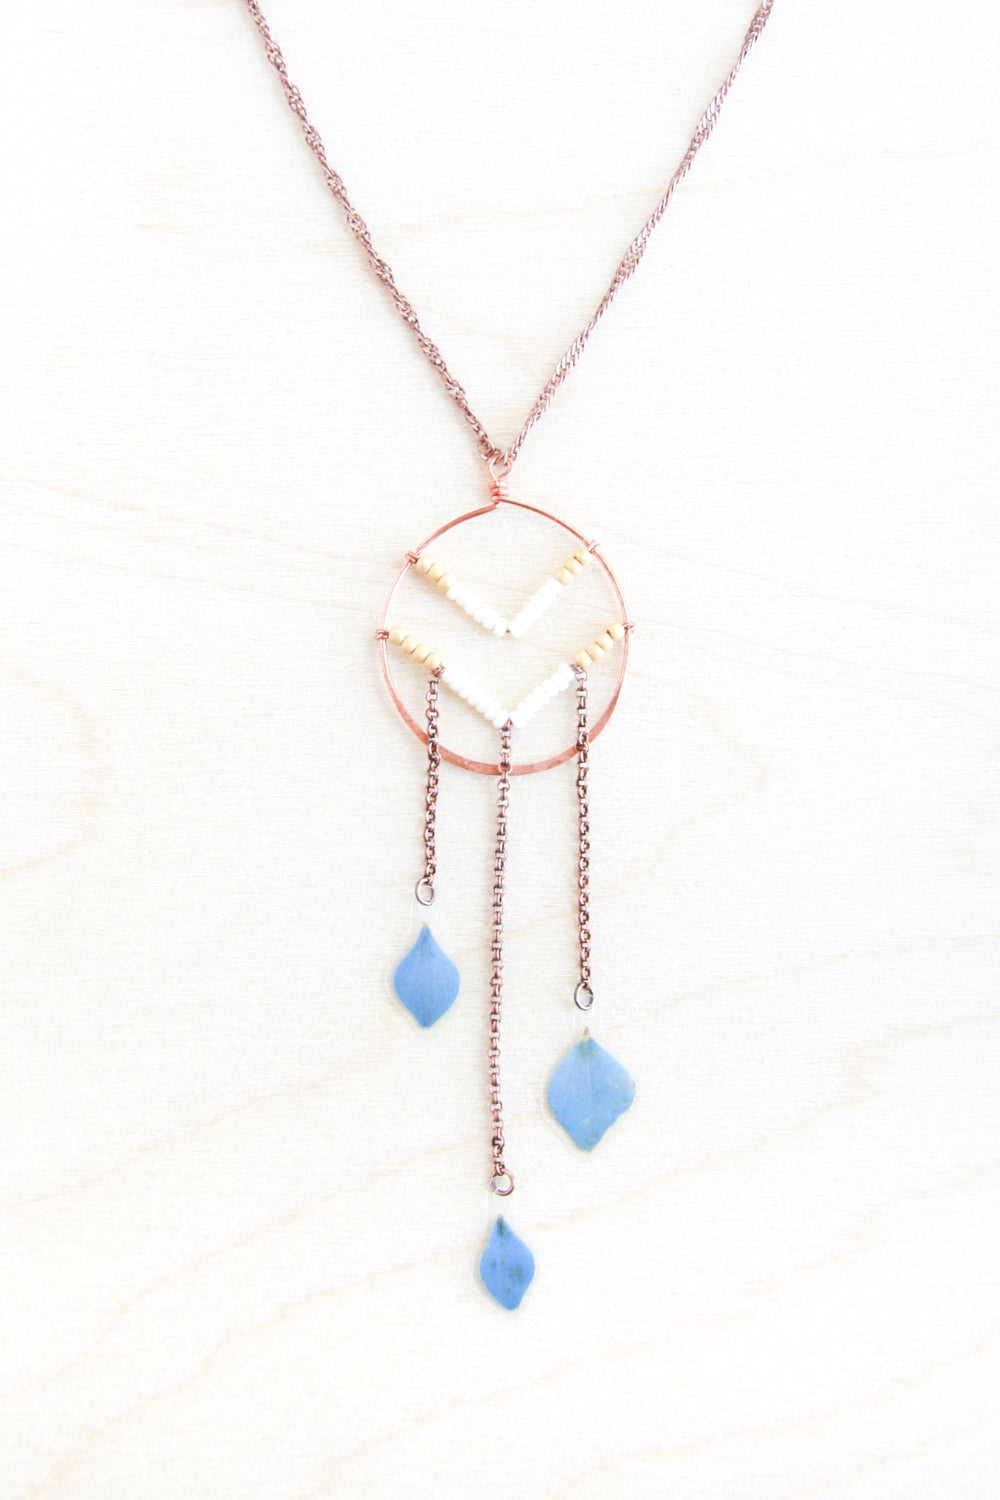 Blue Hydrangea Pressed Petal Necklace with Beaded Chevron & Copper Hoop - Gold & Cream